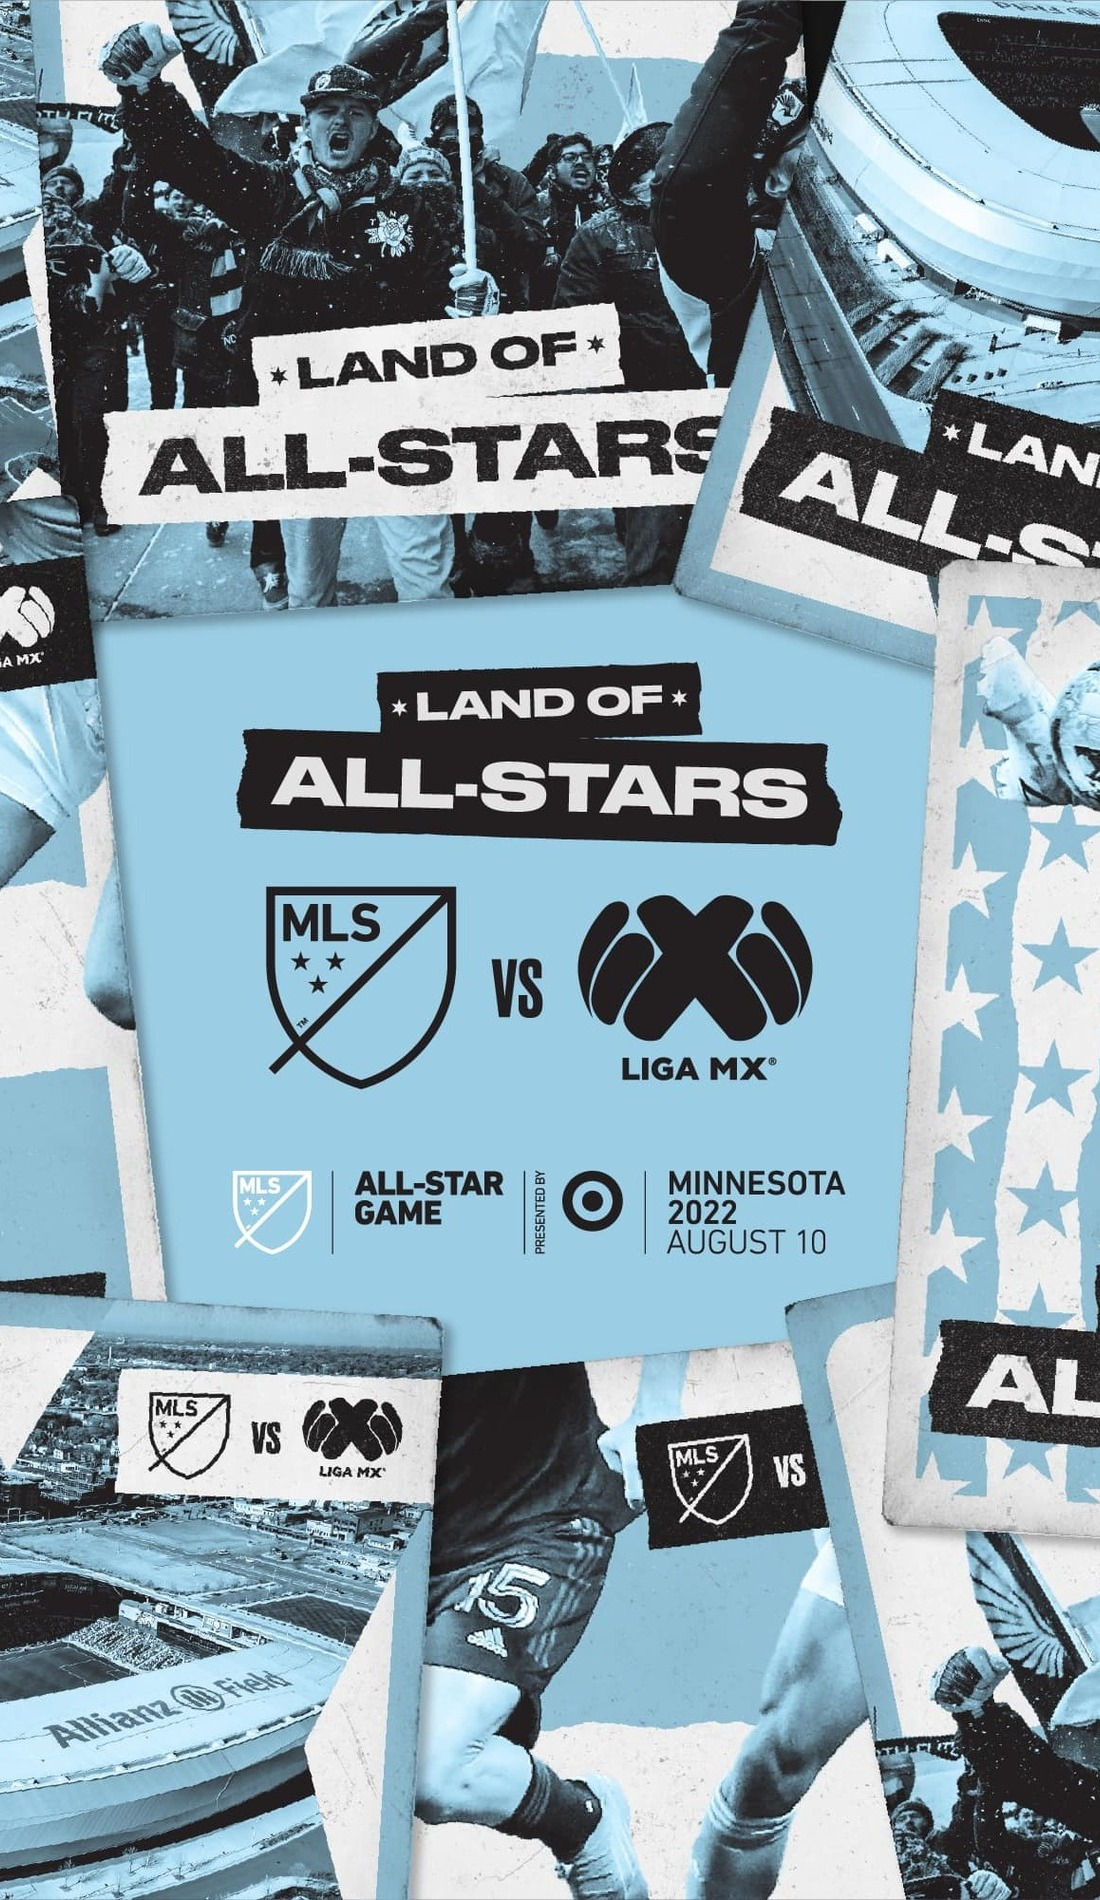 A MLS All-Star Game live event